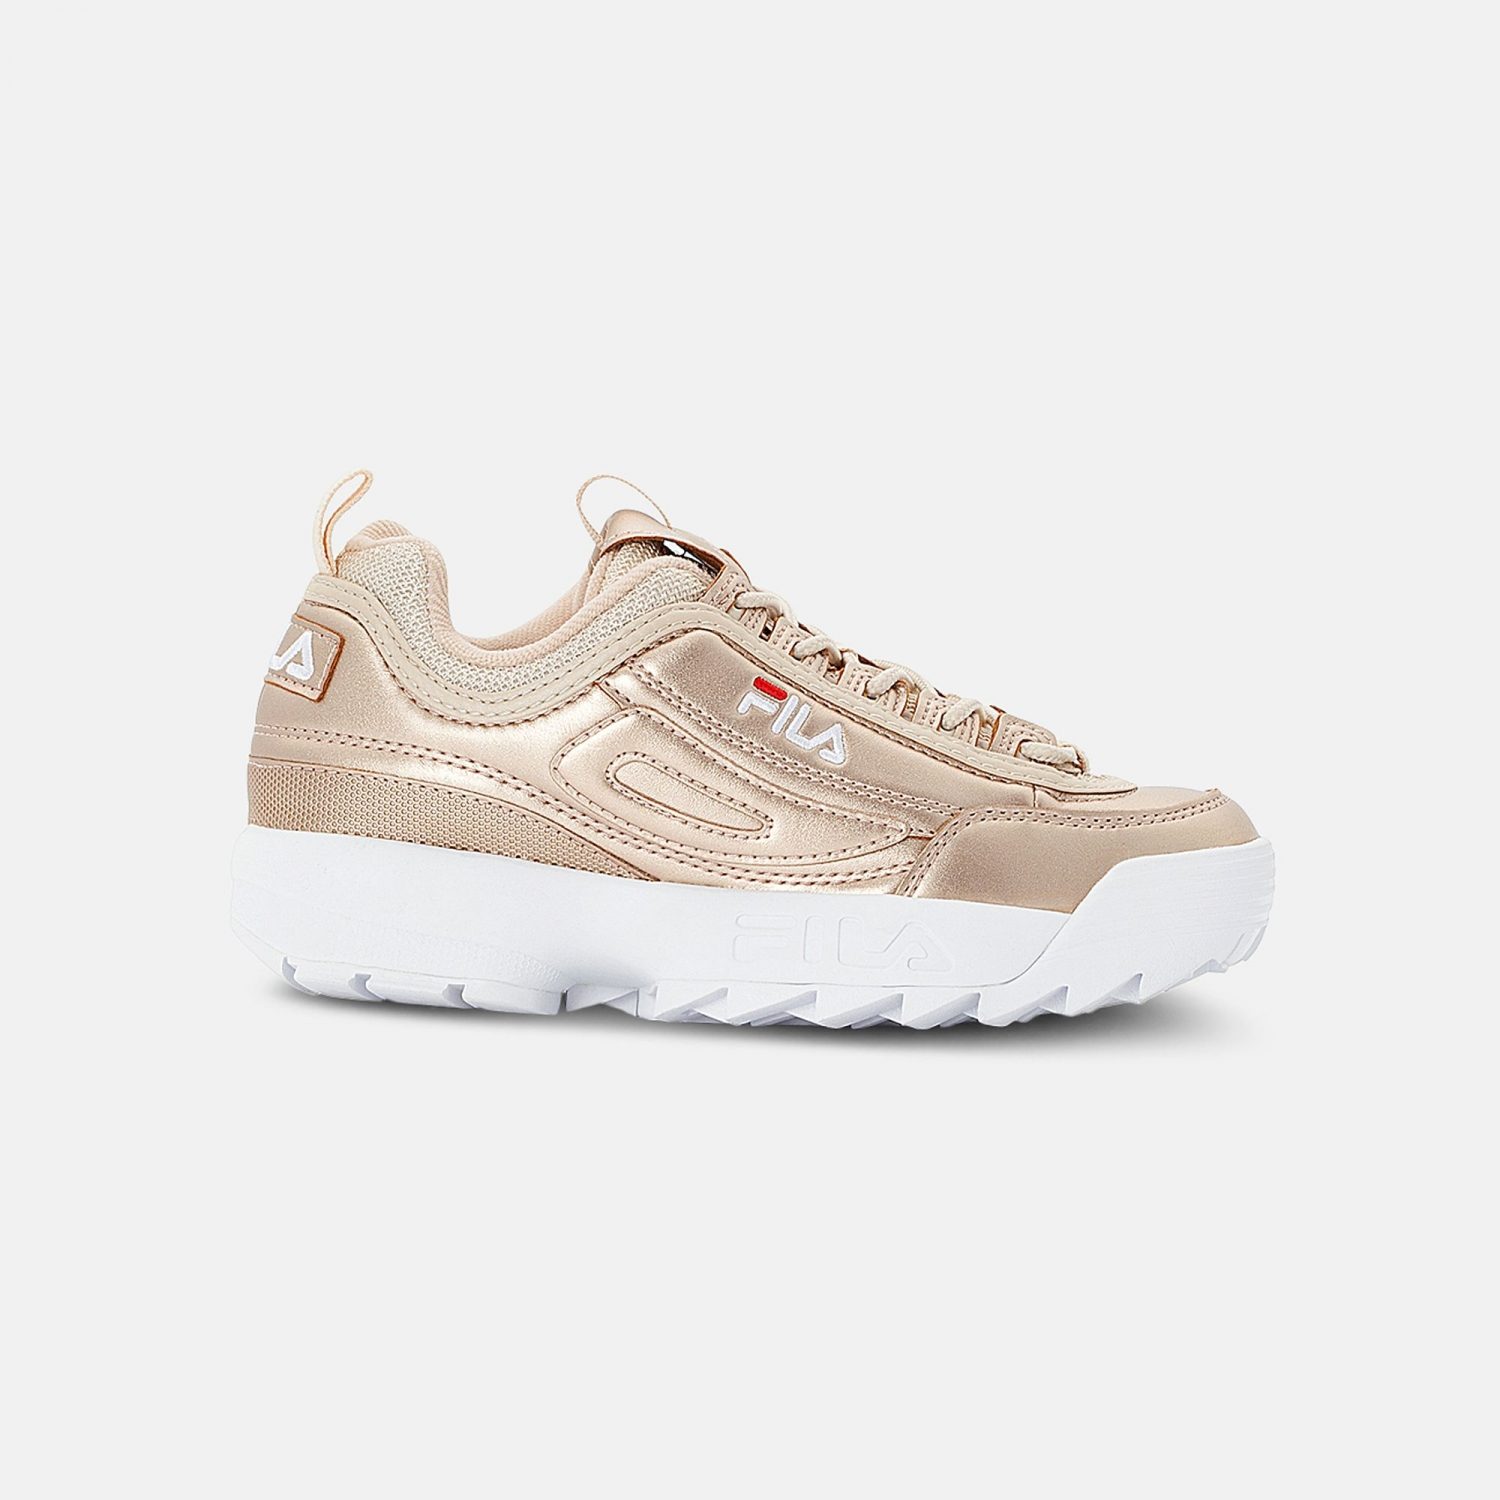 Fila Disruptor M Low Wmn gold Bild 1